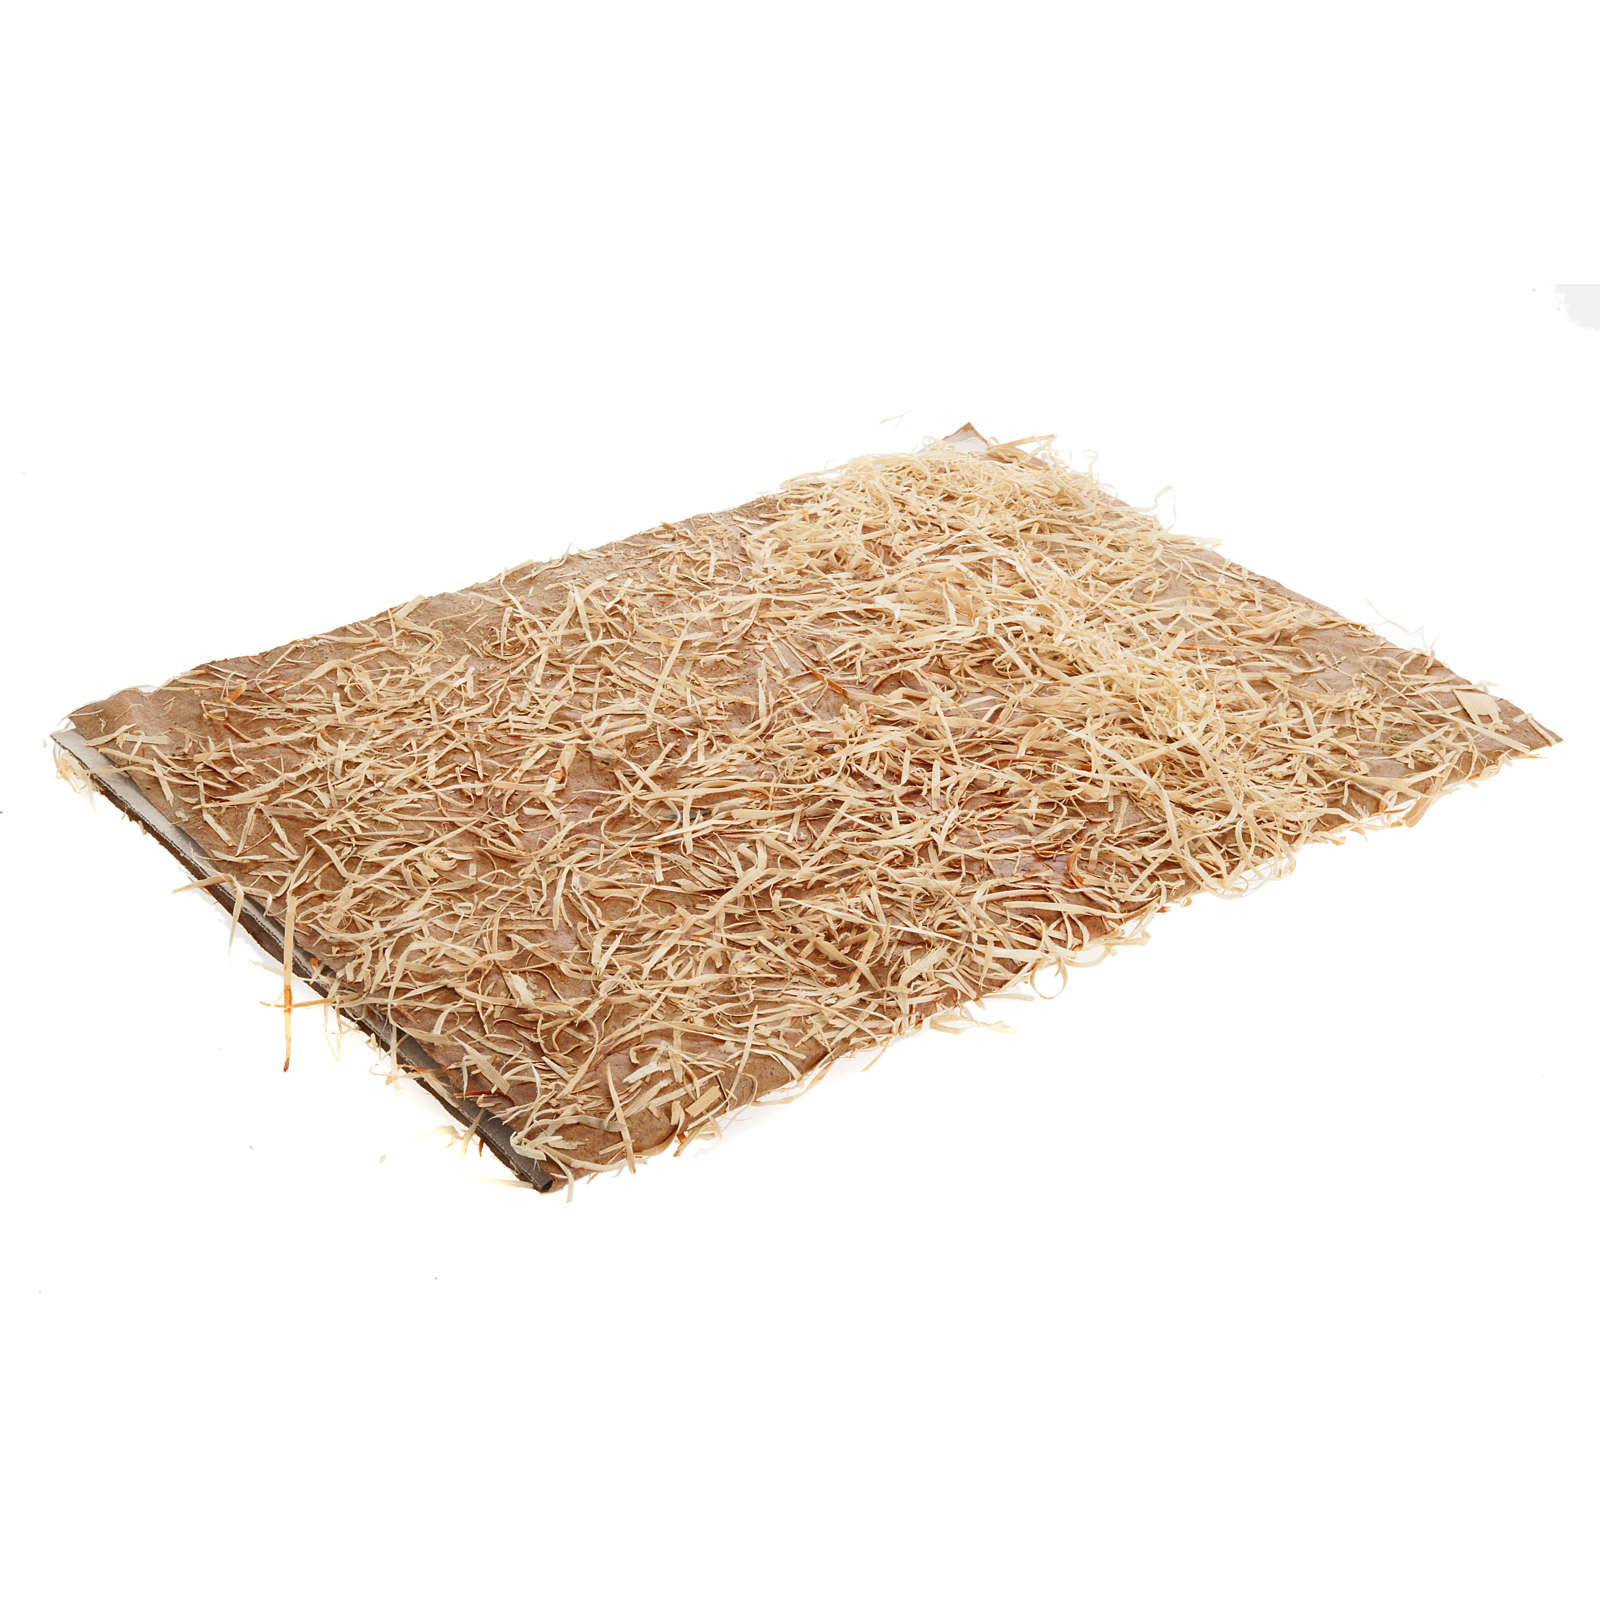 Floor for nativities: sheet with hay measuring 35x50cm 4